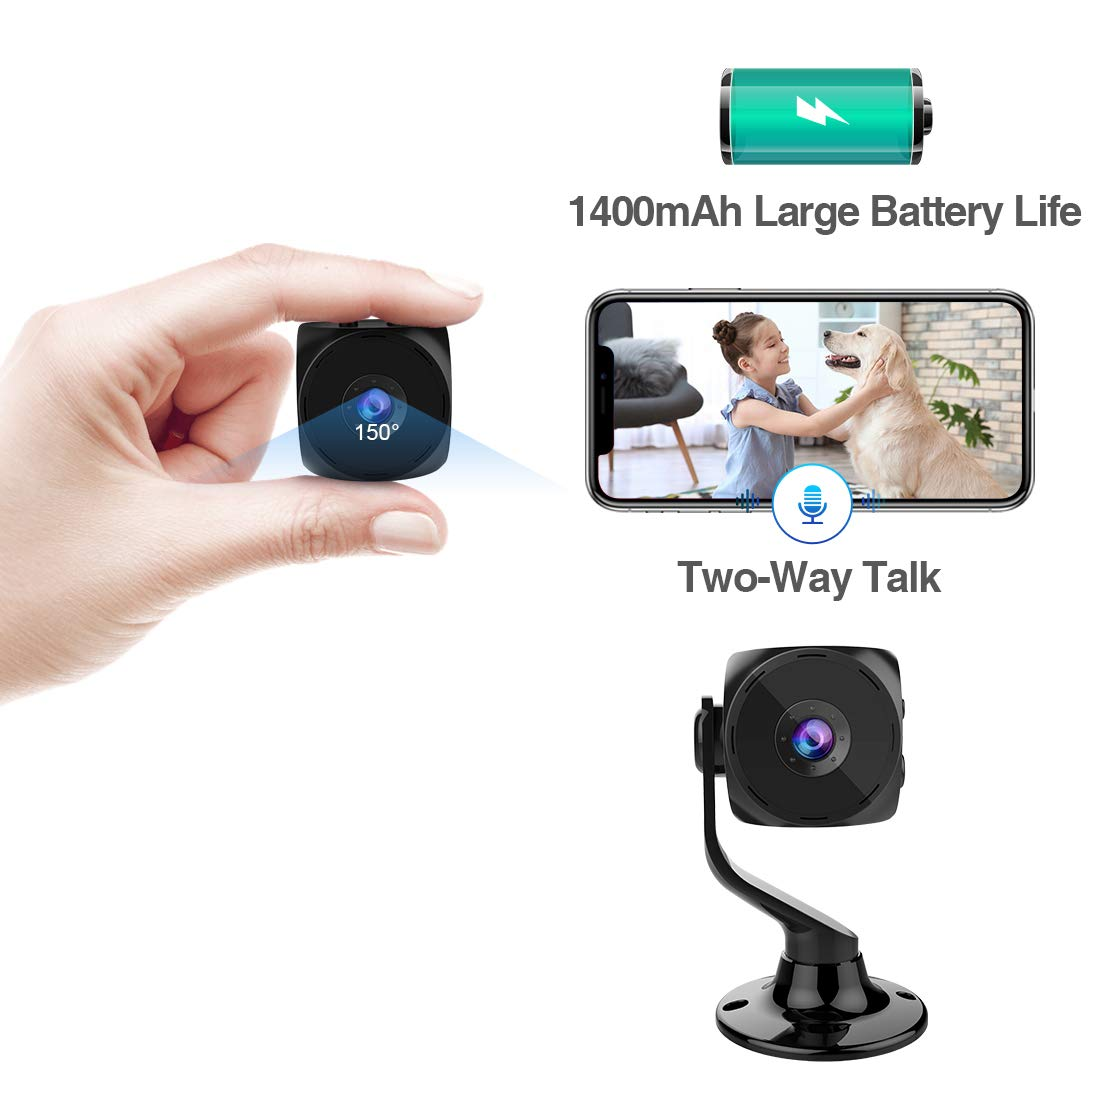 MINIKEAN Spy Camera Wireless Hidden Small Tiny Security Cameras 1080P HD Home Mini WiFi Nanny Cam with Talk Two Way Night Vision Indoor Motion Detection Covert Surveillance Video Camera for Cell Phone by MINIKEAN